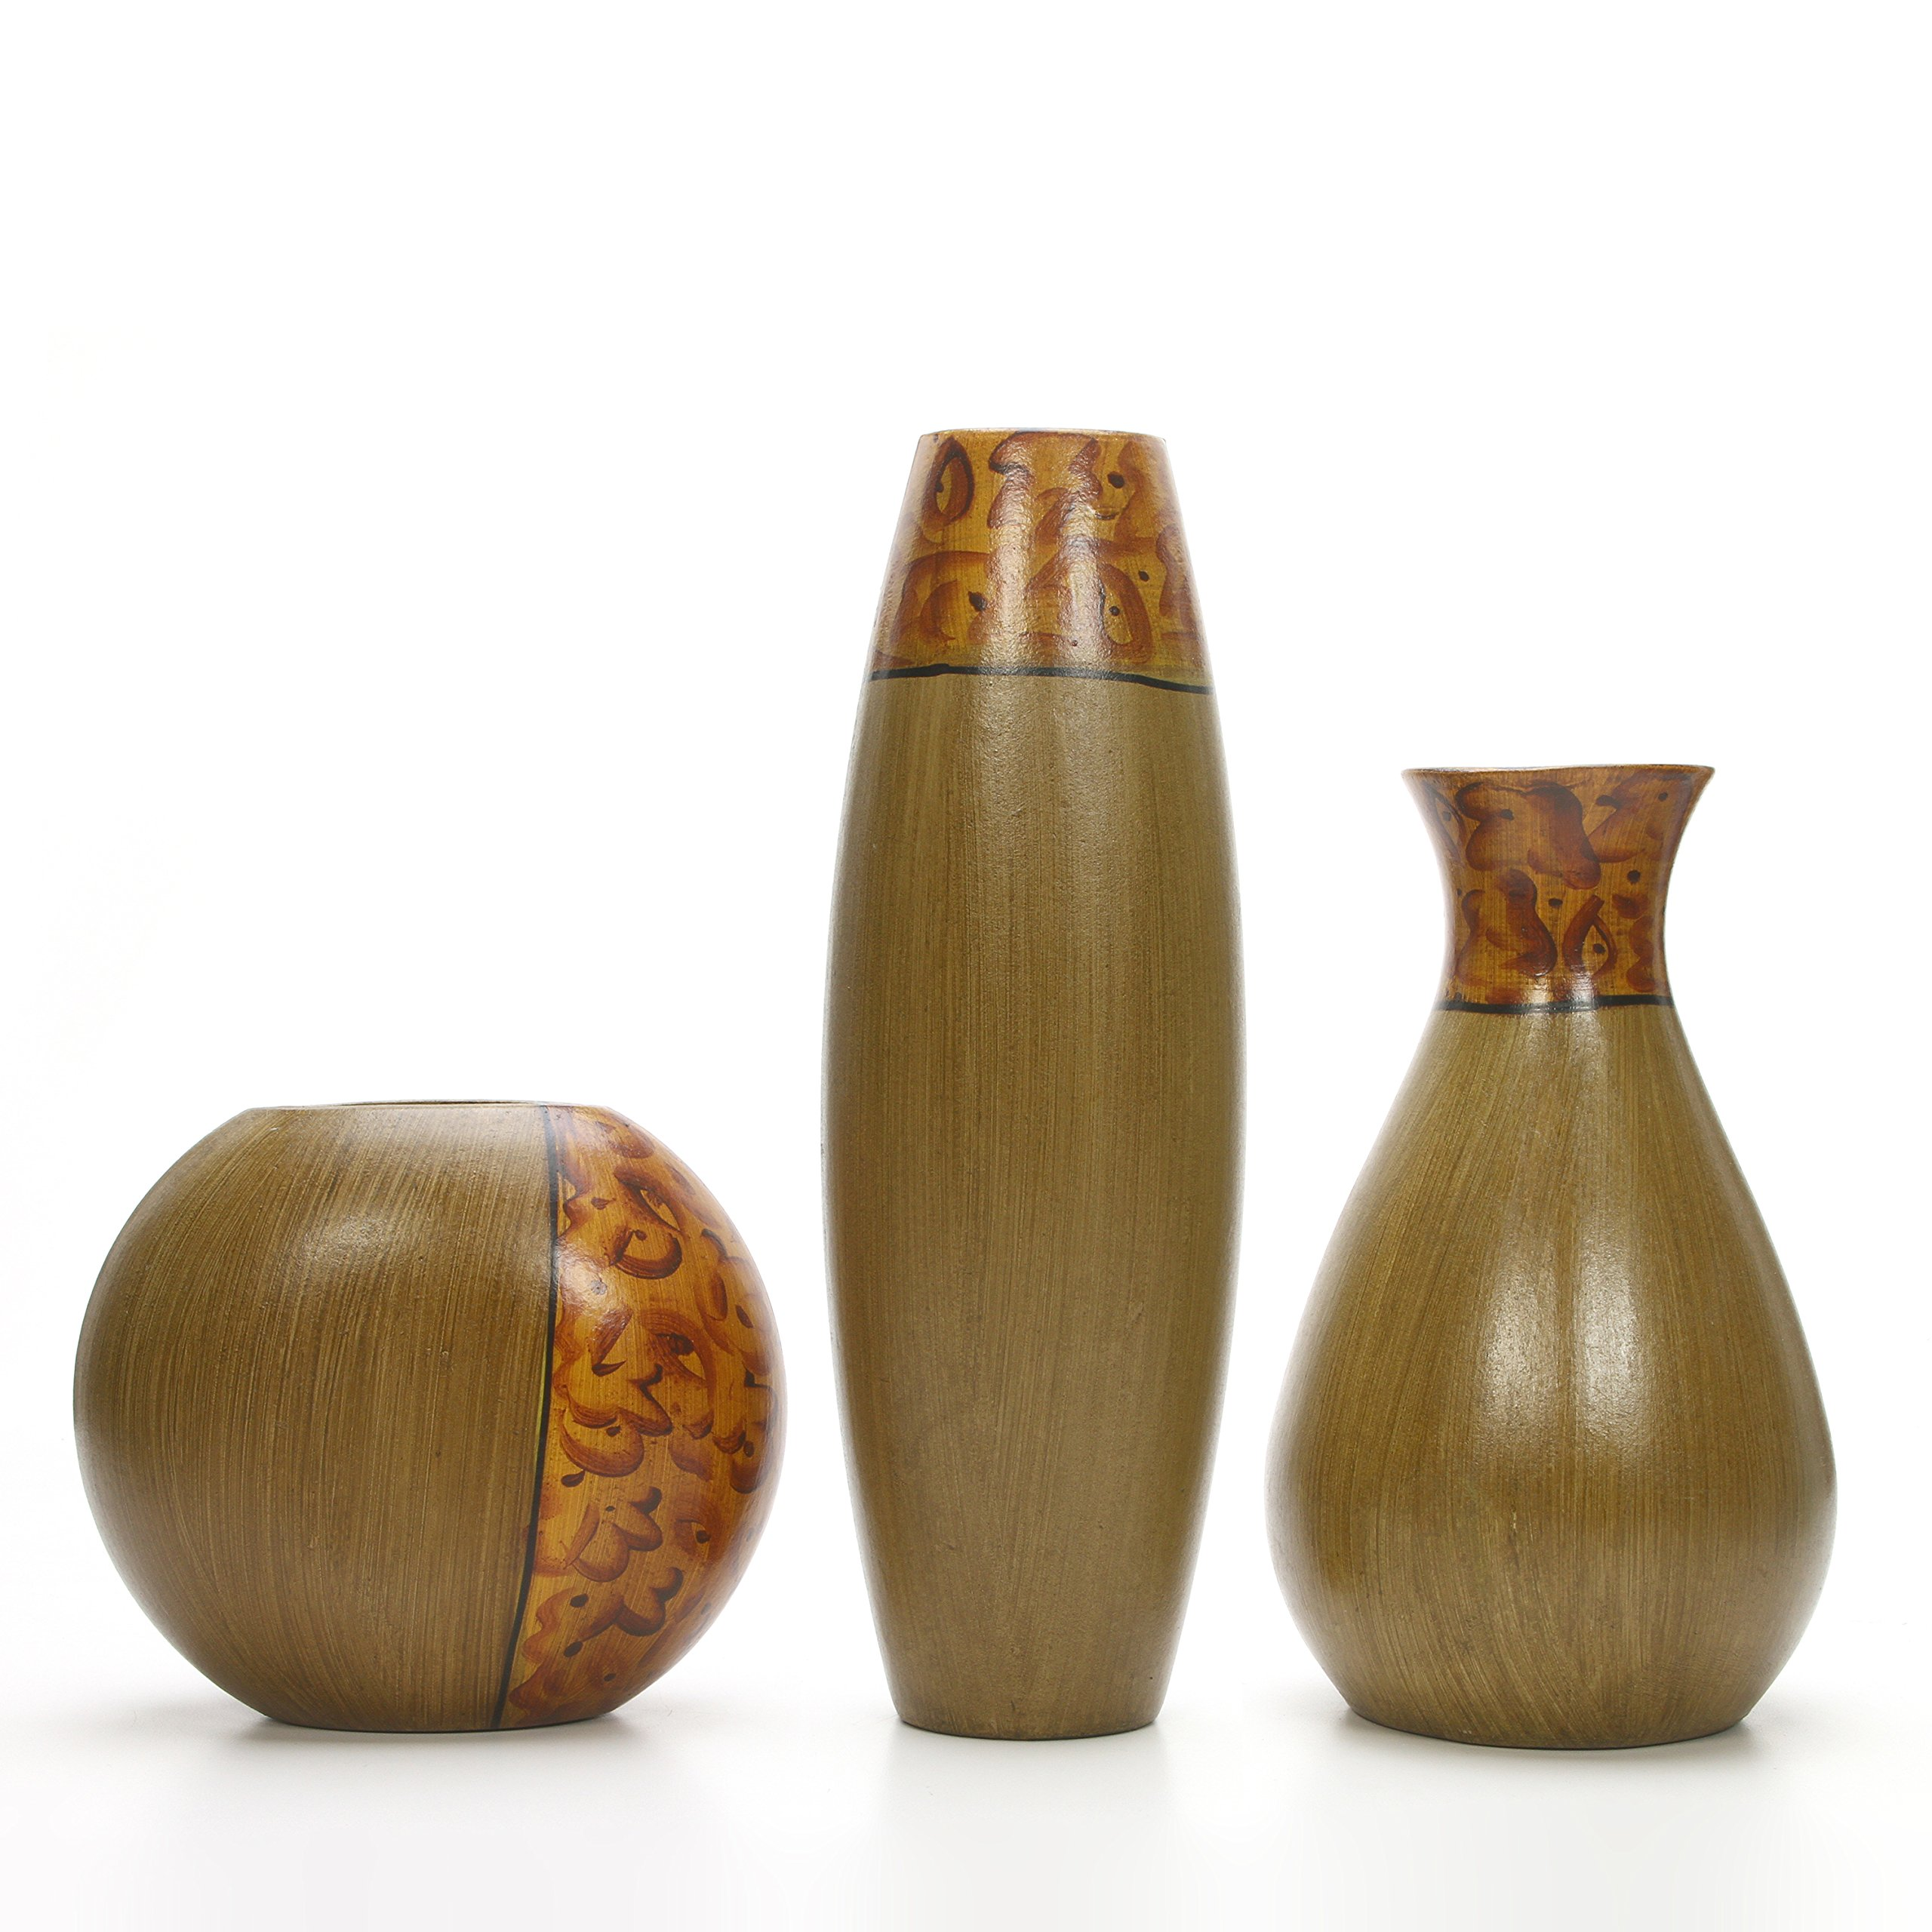 Best floor vases for decor | Amazon.com on floor lamp decor, floor light decor, floor wall decor, floor plant decor, floor pillow decor, floor vases for decoration home, wall pocket decor, floor mirror decor, floor desk decor, floor vases with branches, floor tile decor, floor vases with sticks,